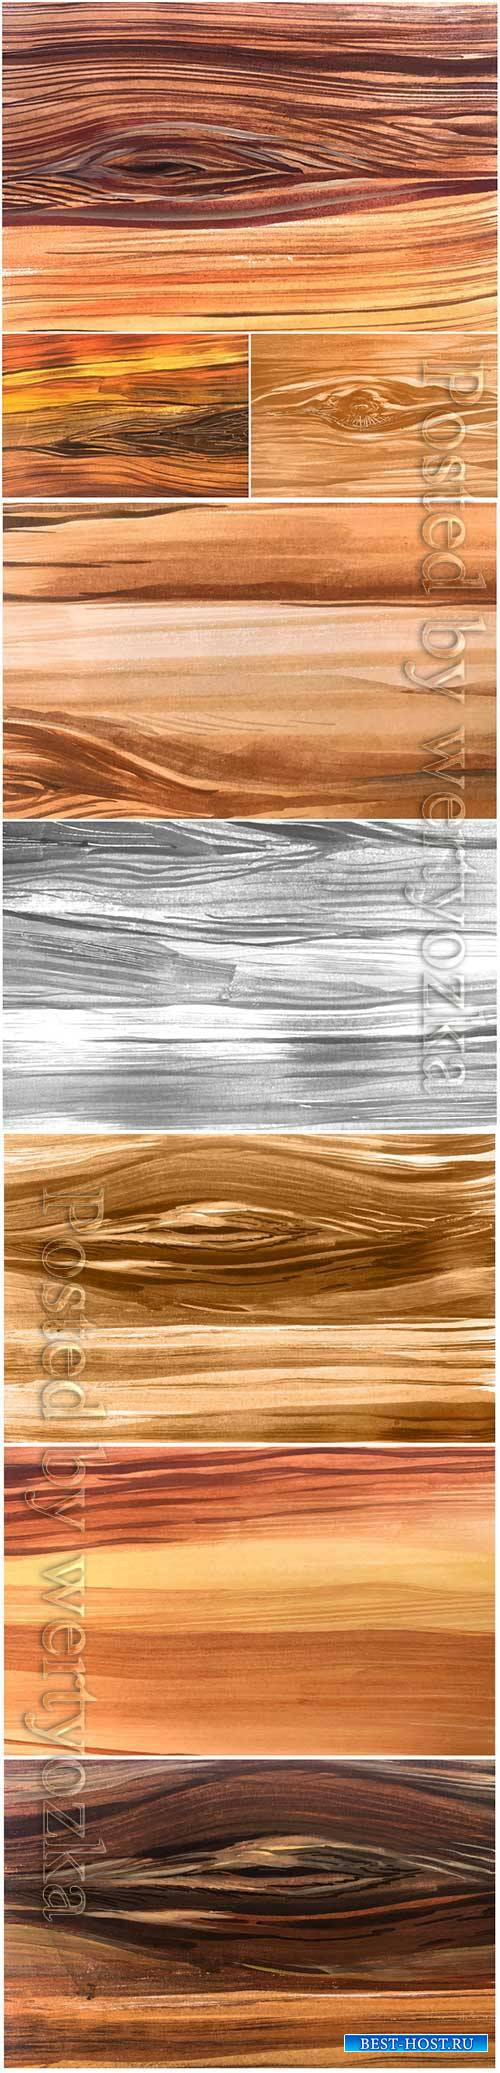 Natural wooden texture vector background